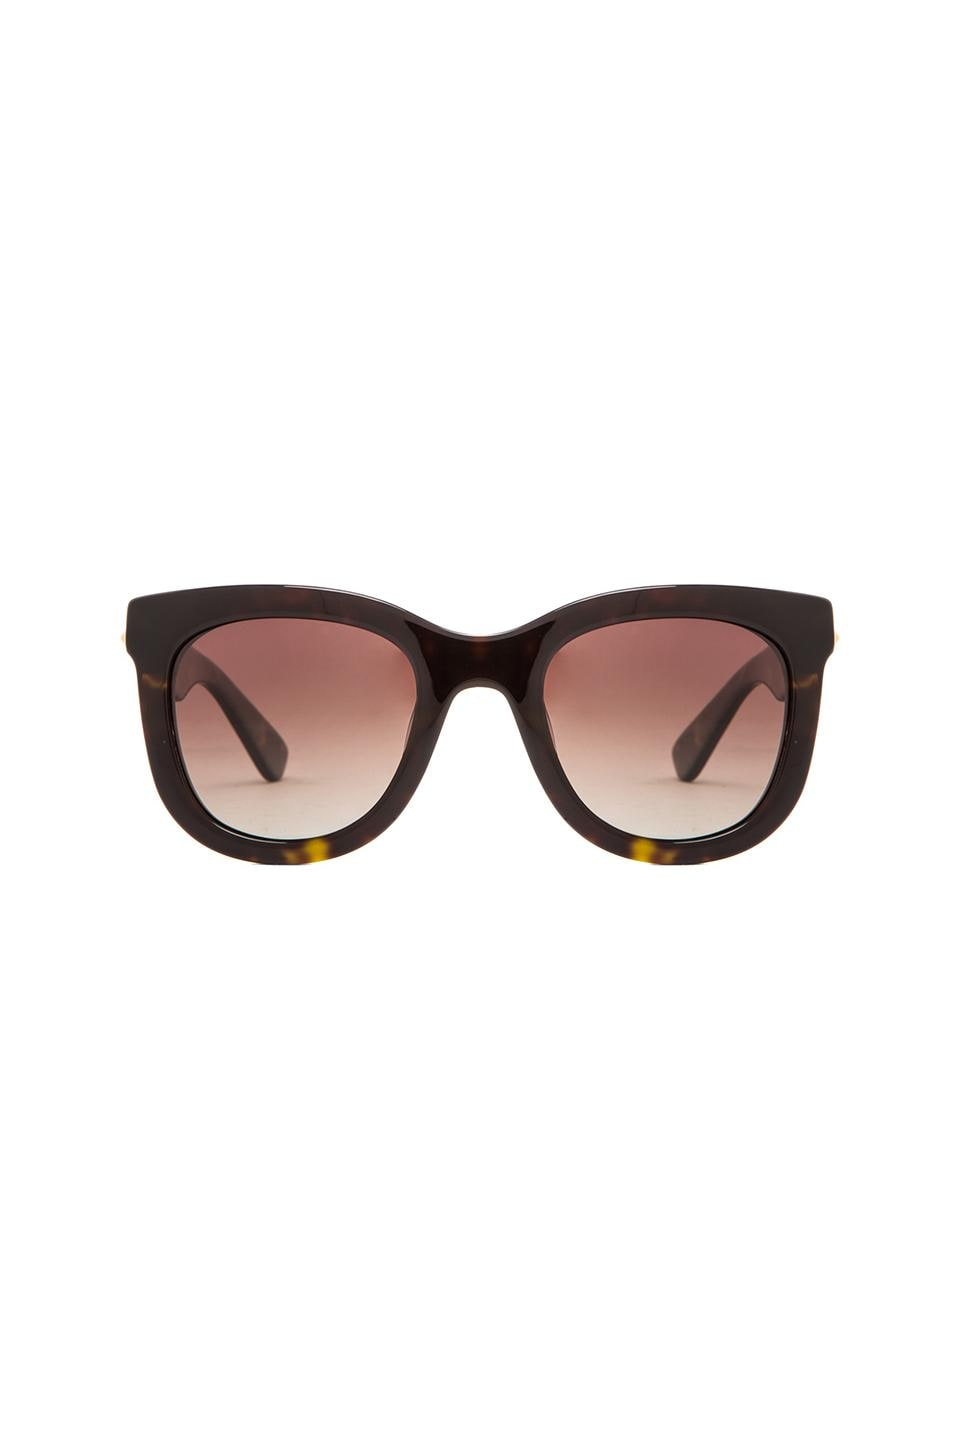 ANINE BING New York Sunglasses in Tortoise Shell